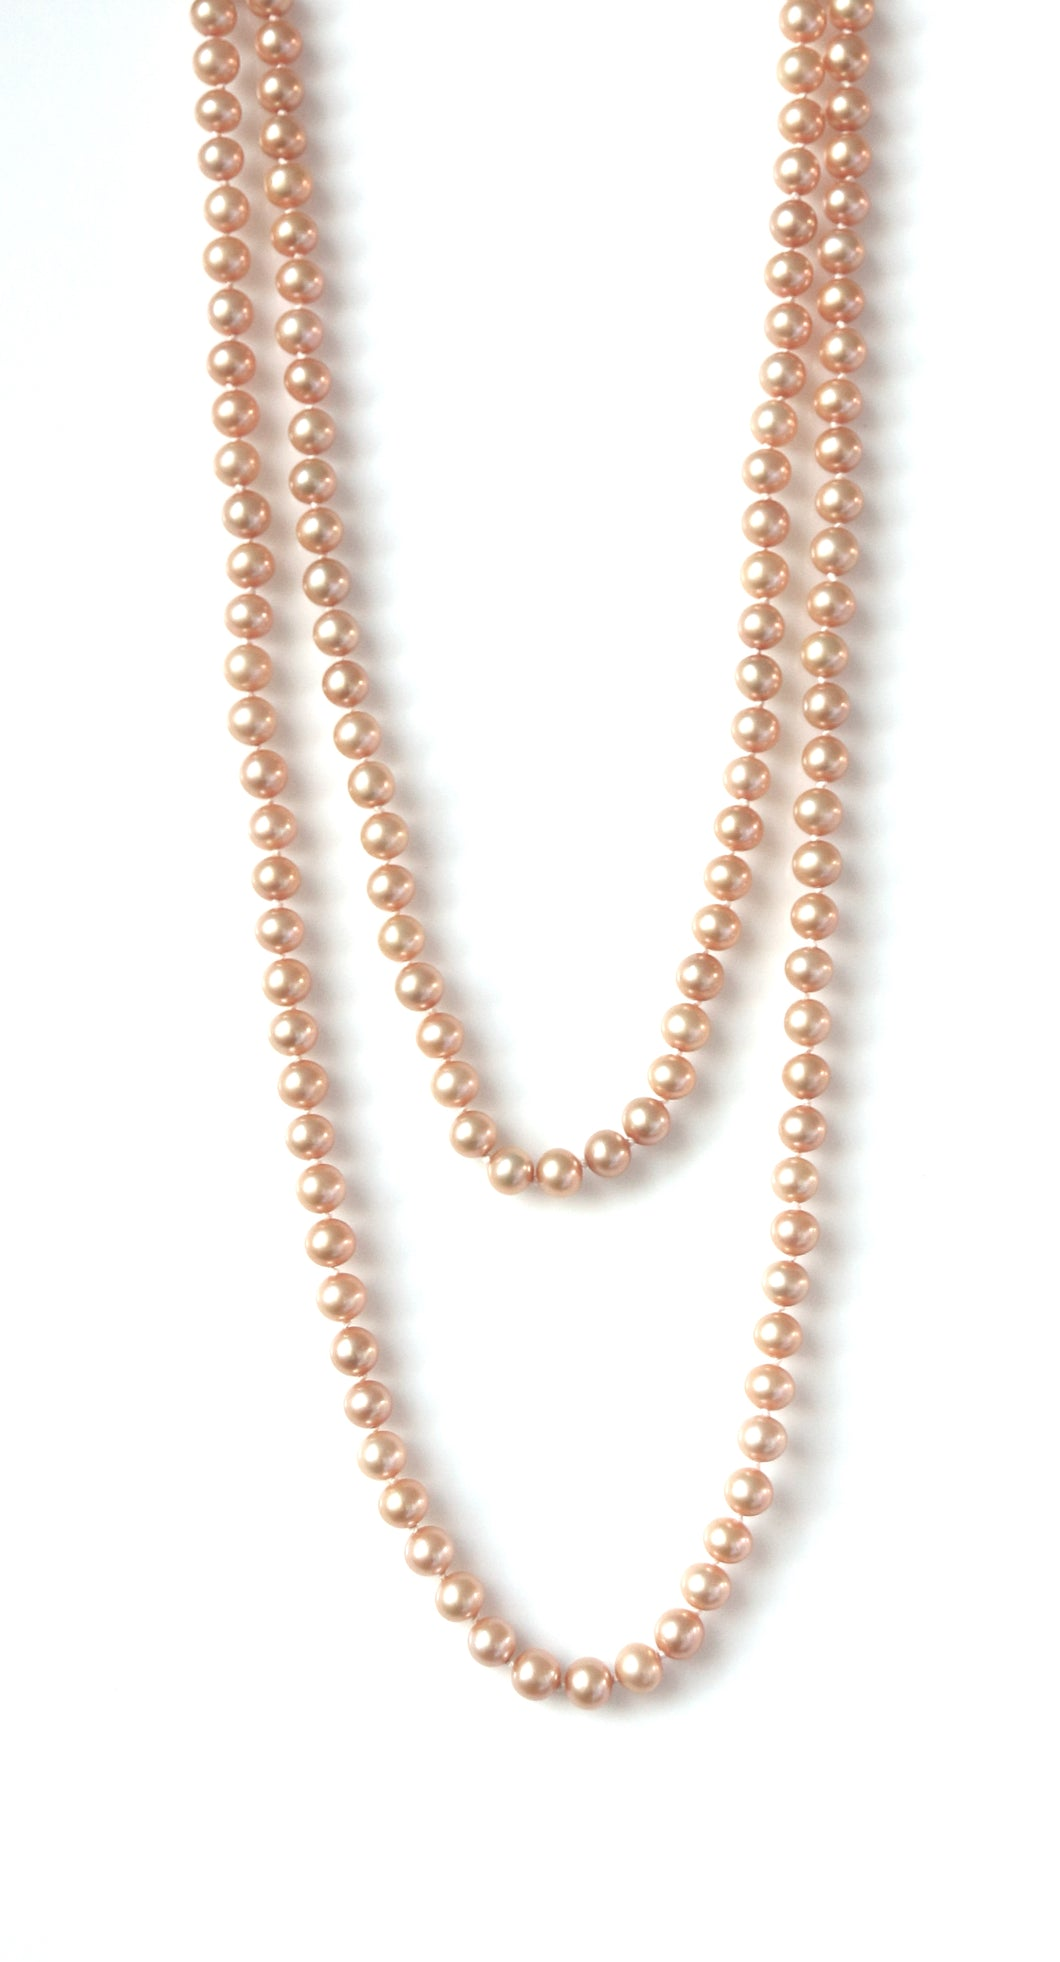 Australian Handmade Necklace with Pink/Peach Coloured Pearls